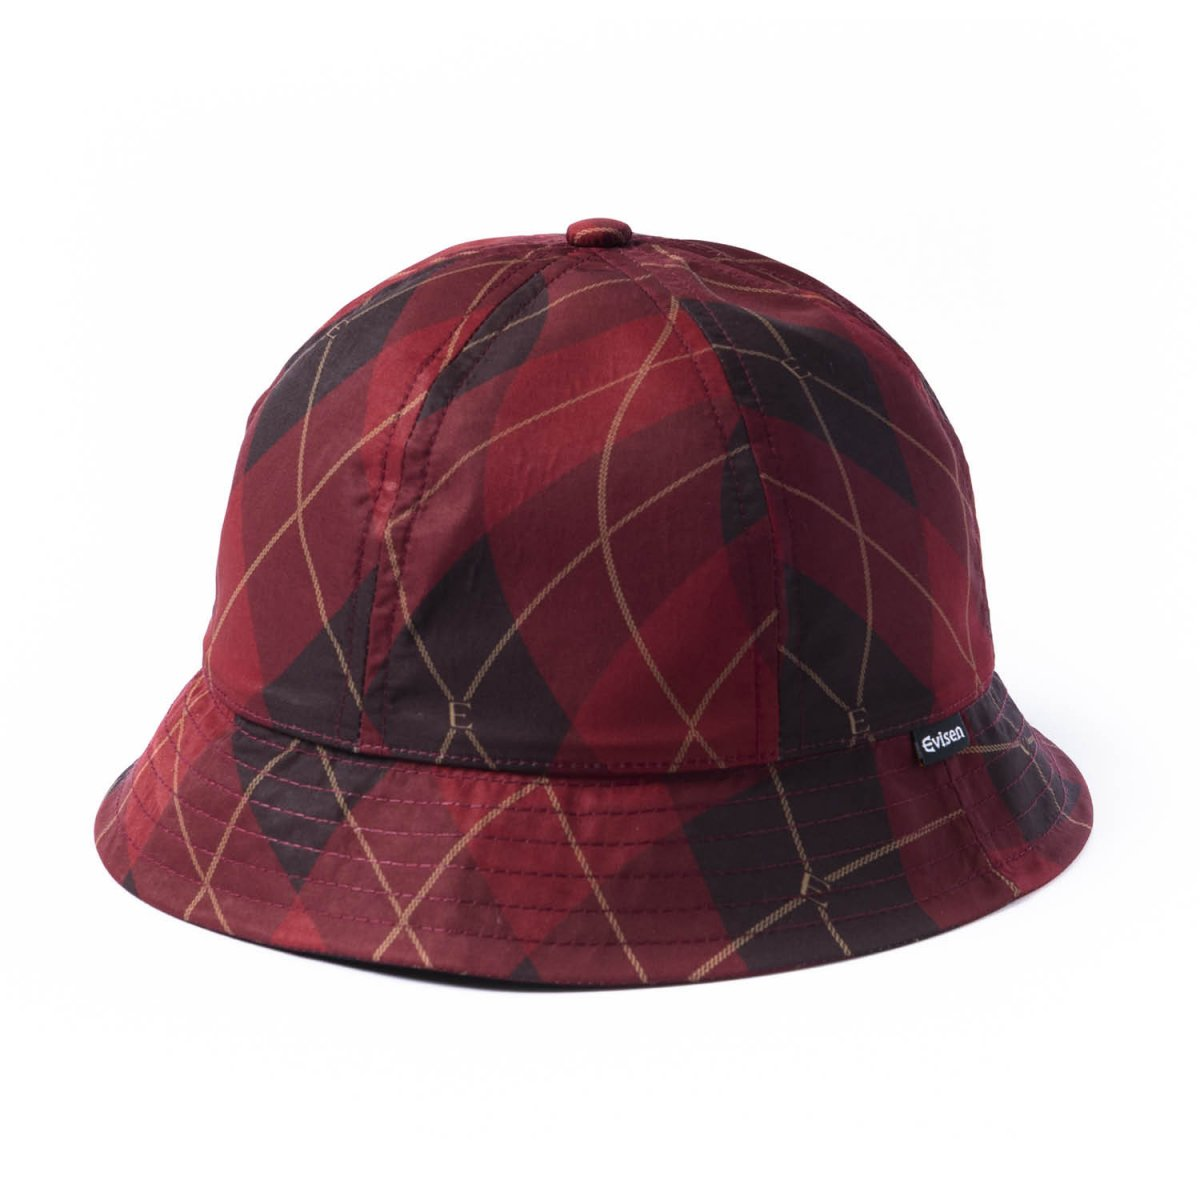 <img class='new_mark_img1' src='https://img.shop-pro.jp/img/new/icons8.gif' style='border:none;display:inline;margin:0px;padding:0px;width:auto;' />【EVISEN】Bent Argyle Hat (Red)                           </a>             <span class=